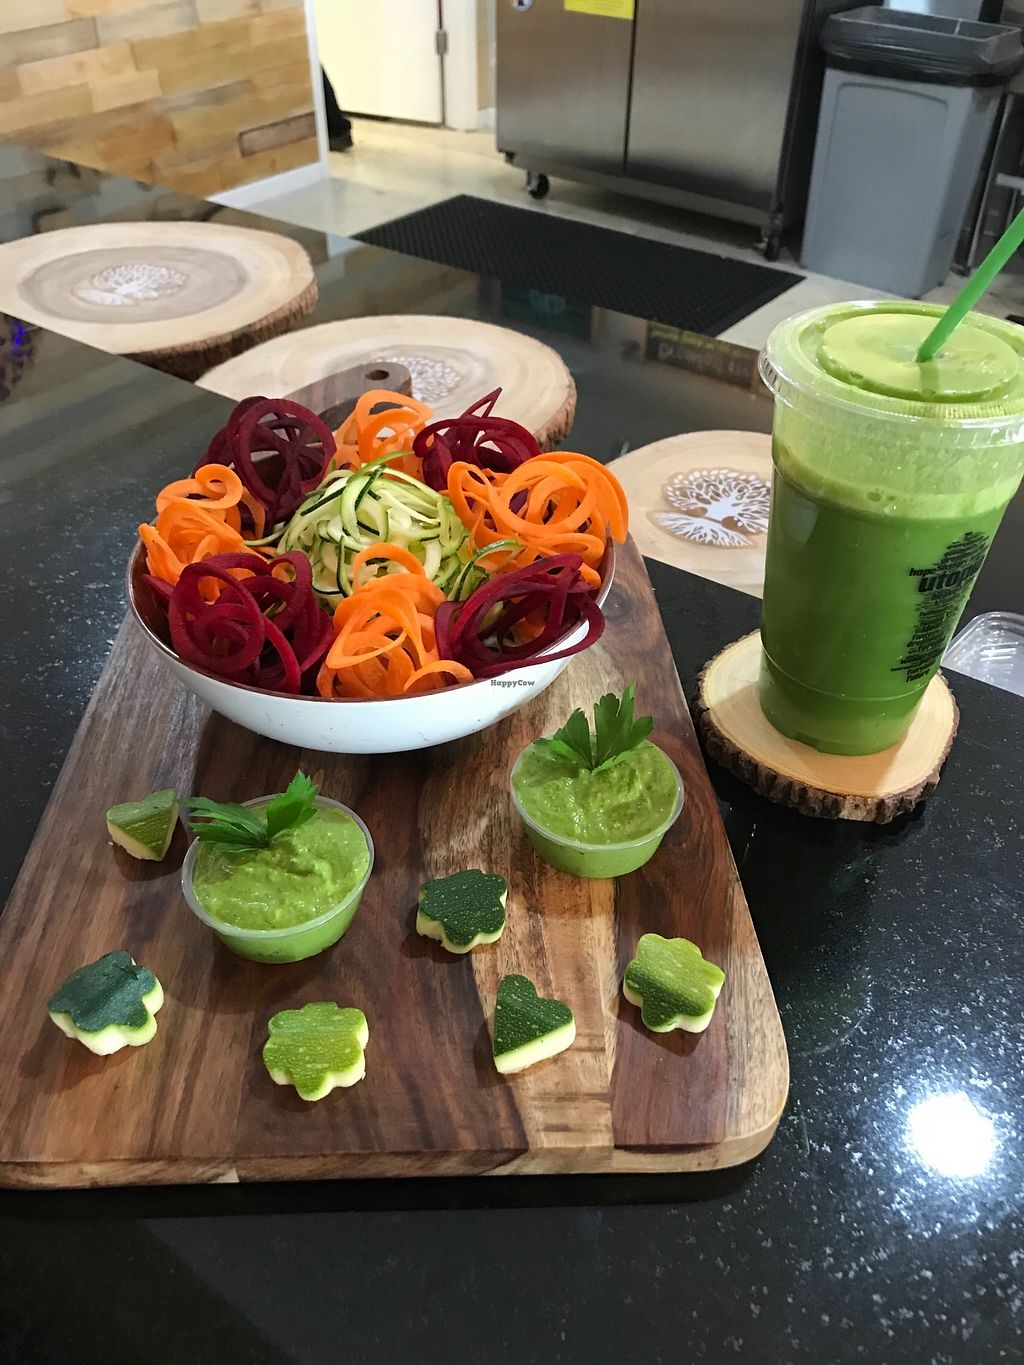 """Photo of Utopia Juice Bar  by <a href=""""/members/profile/CaptVegan"""">CaptVegan</a> <br/>Zucchini Spaghetti and a fresh pressed Eden Greens drink.  <br/> January 14, 2018  - <a href='/contact/abuse/image/66119/346642'>Report</a>"""